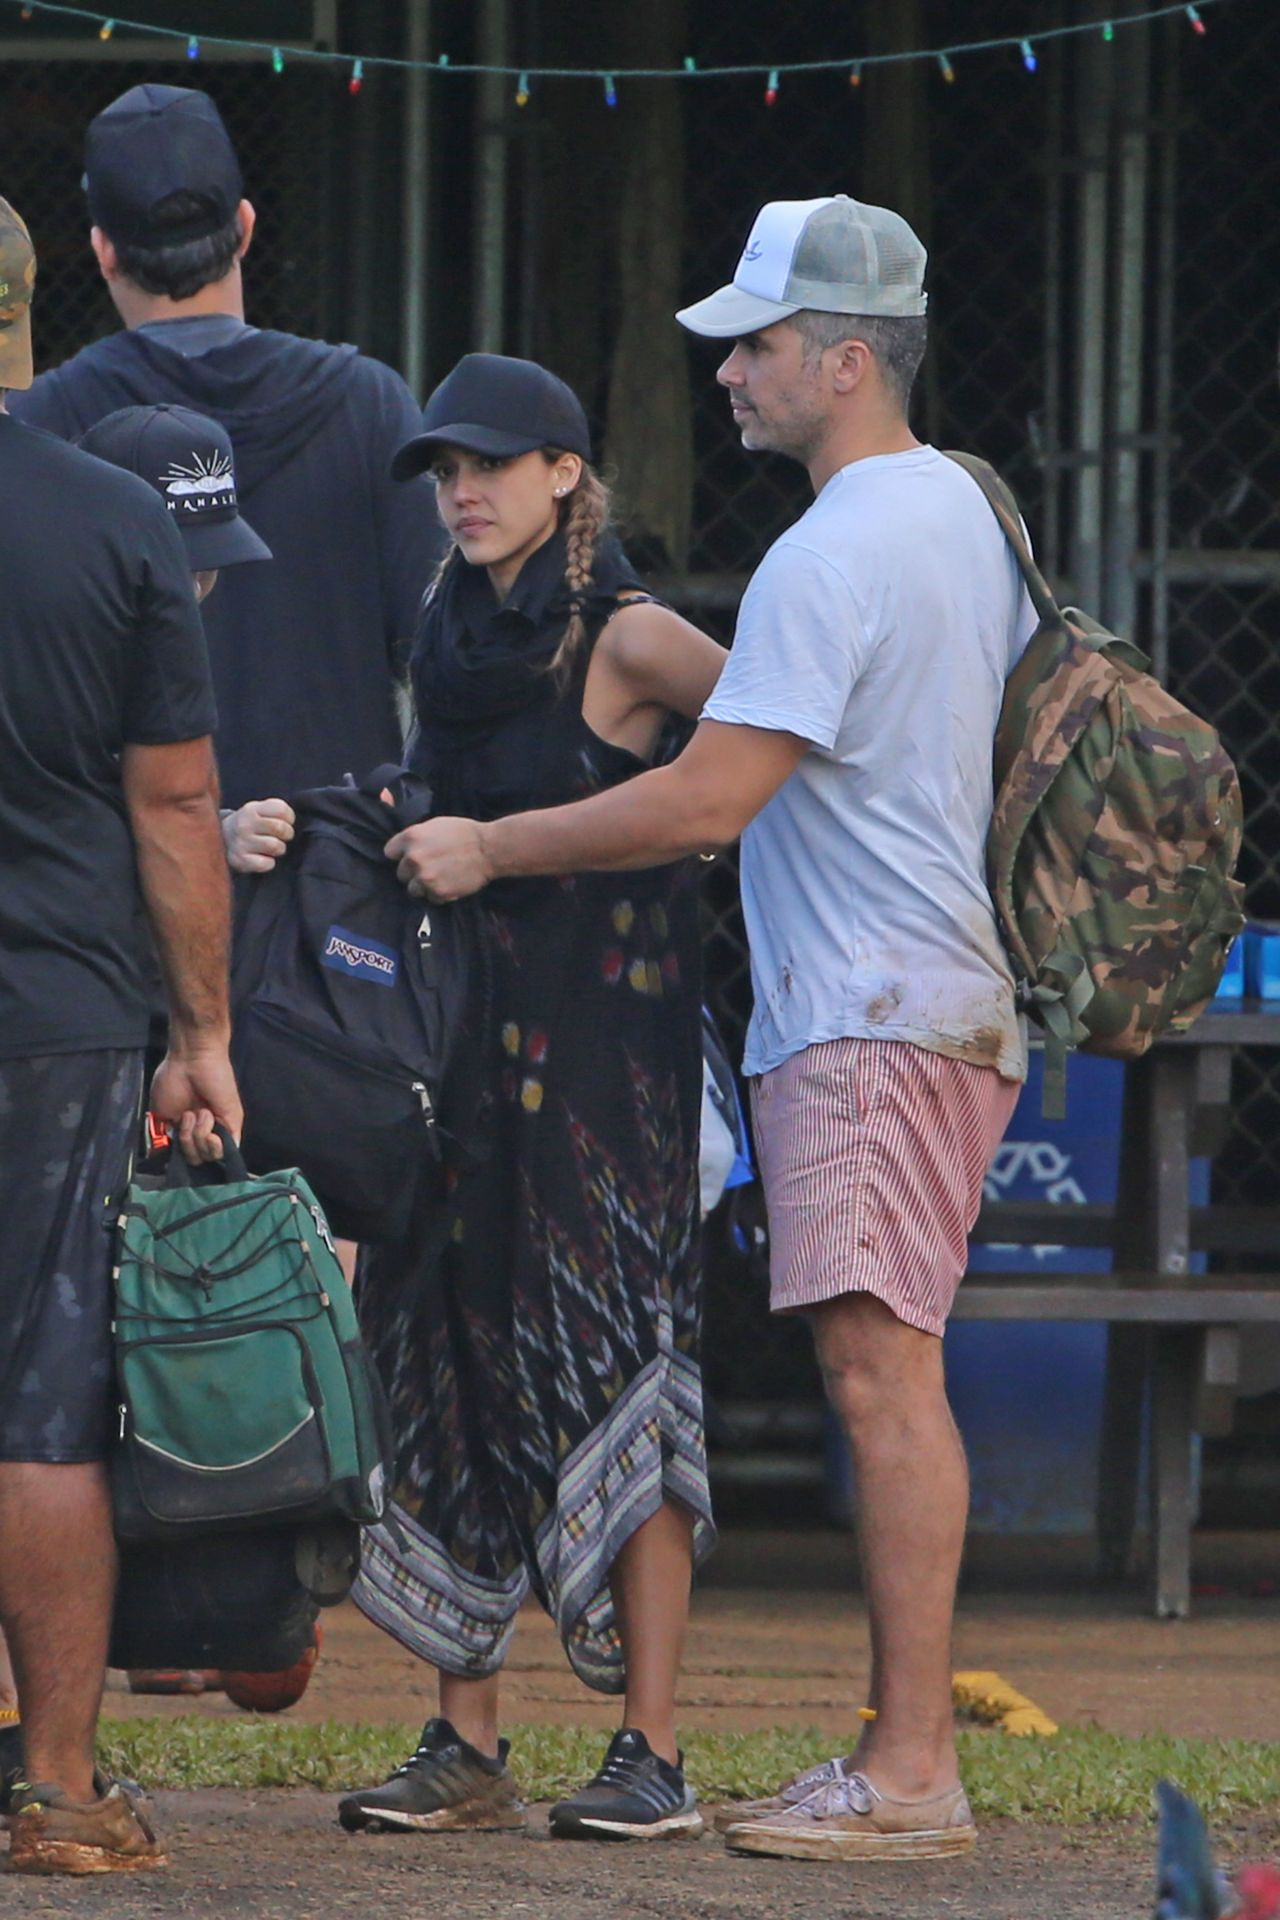 http://celebmafia.com/wp-content/uploads/2017/01/jessica-alba-goes-zip-lining-with-her-family-hawaii-12-31-2016-2.jpg